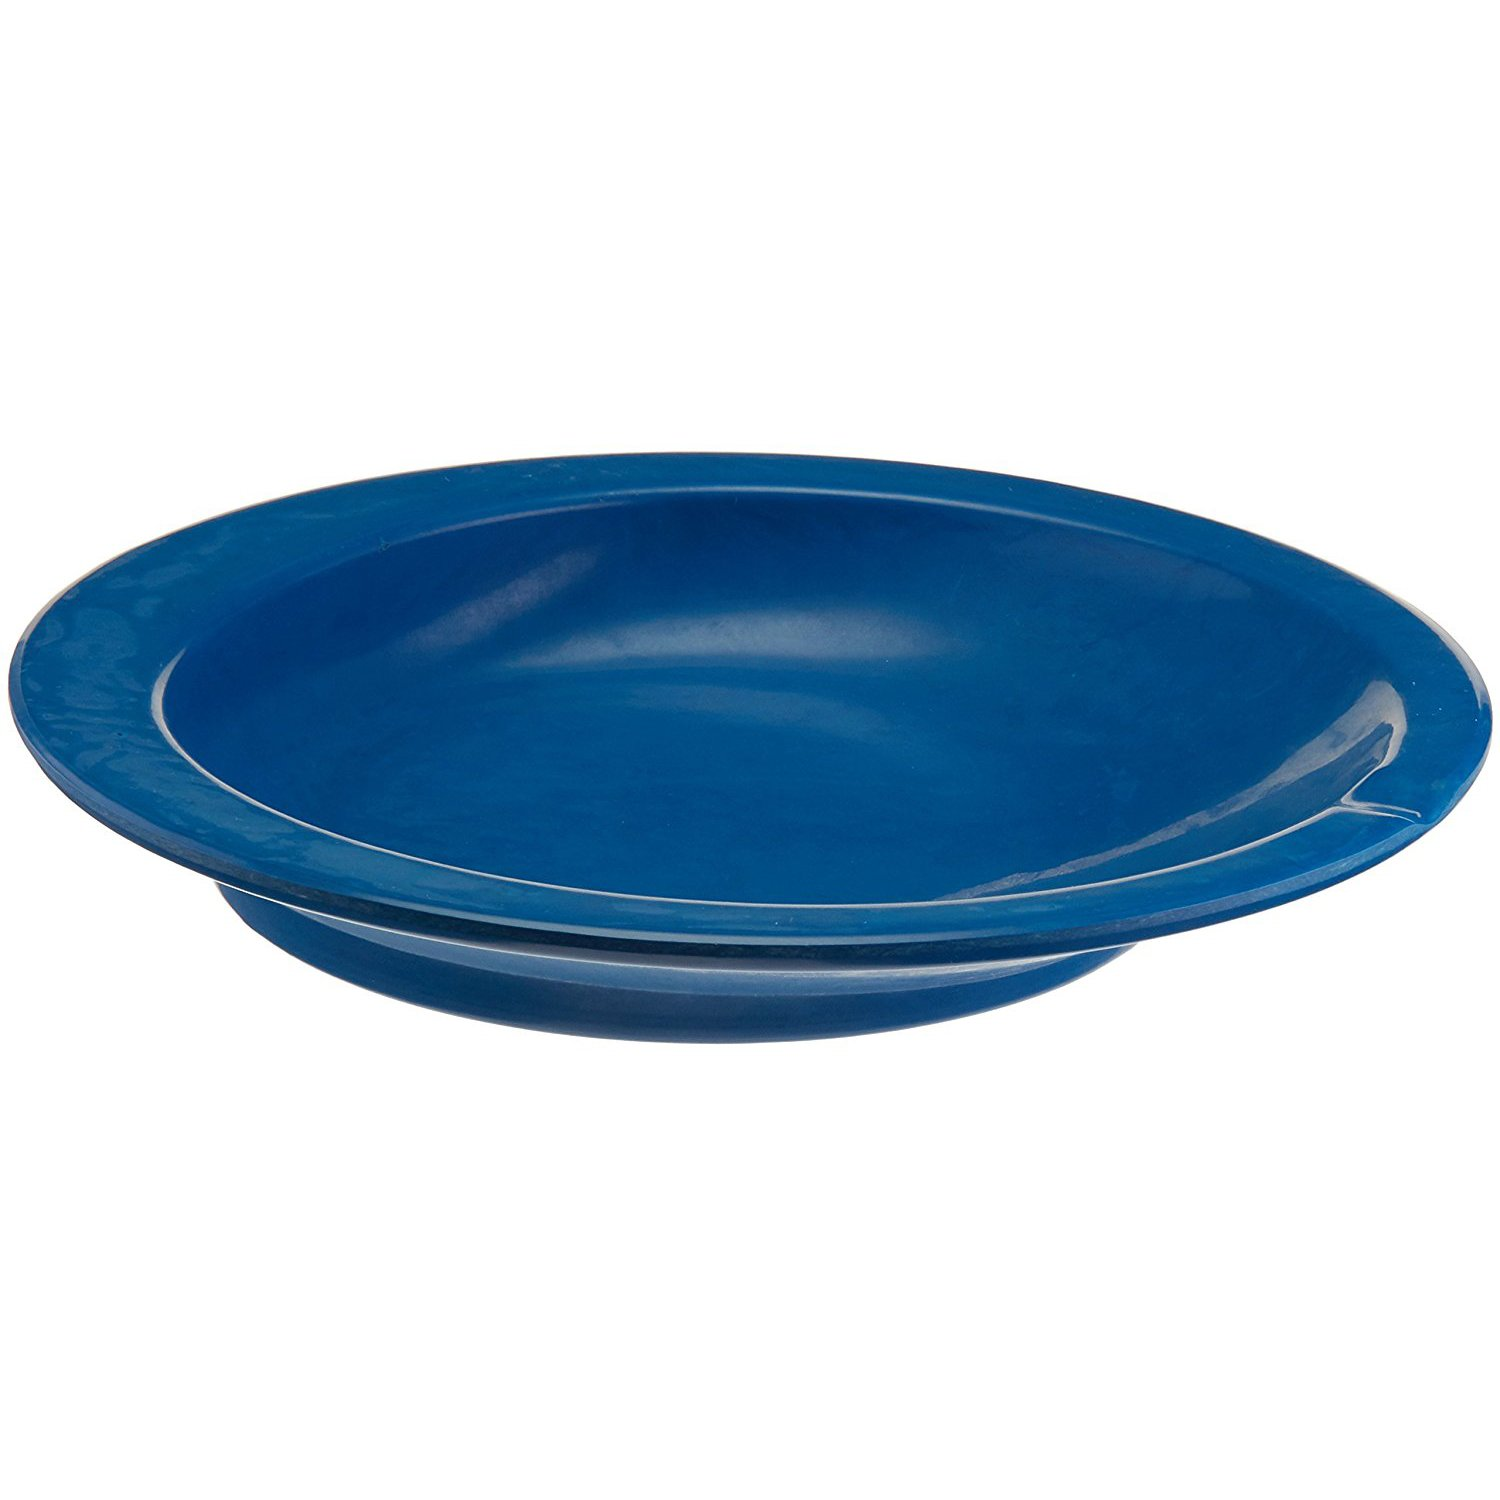 Sammons Preston Round Scoop Dish, Blue, Polyester Dish with Non-Skid Base has 9'' Diameter & Center Depth of 1.5'', Grooved Lip Orients the Visually Impaired & Acts as Utensil Rest, Adaptive Eating Aid